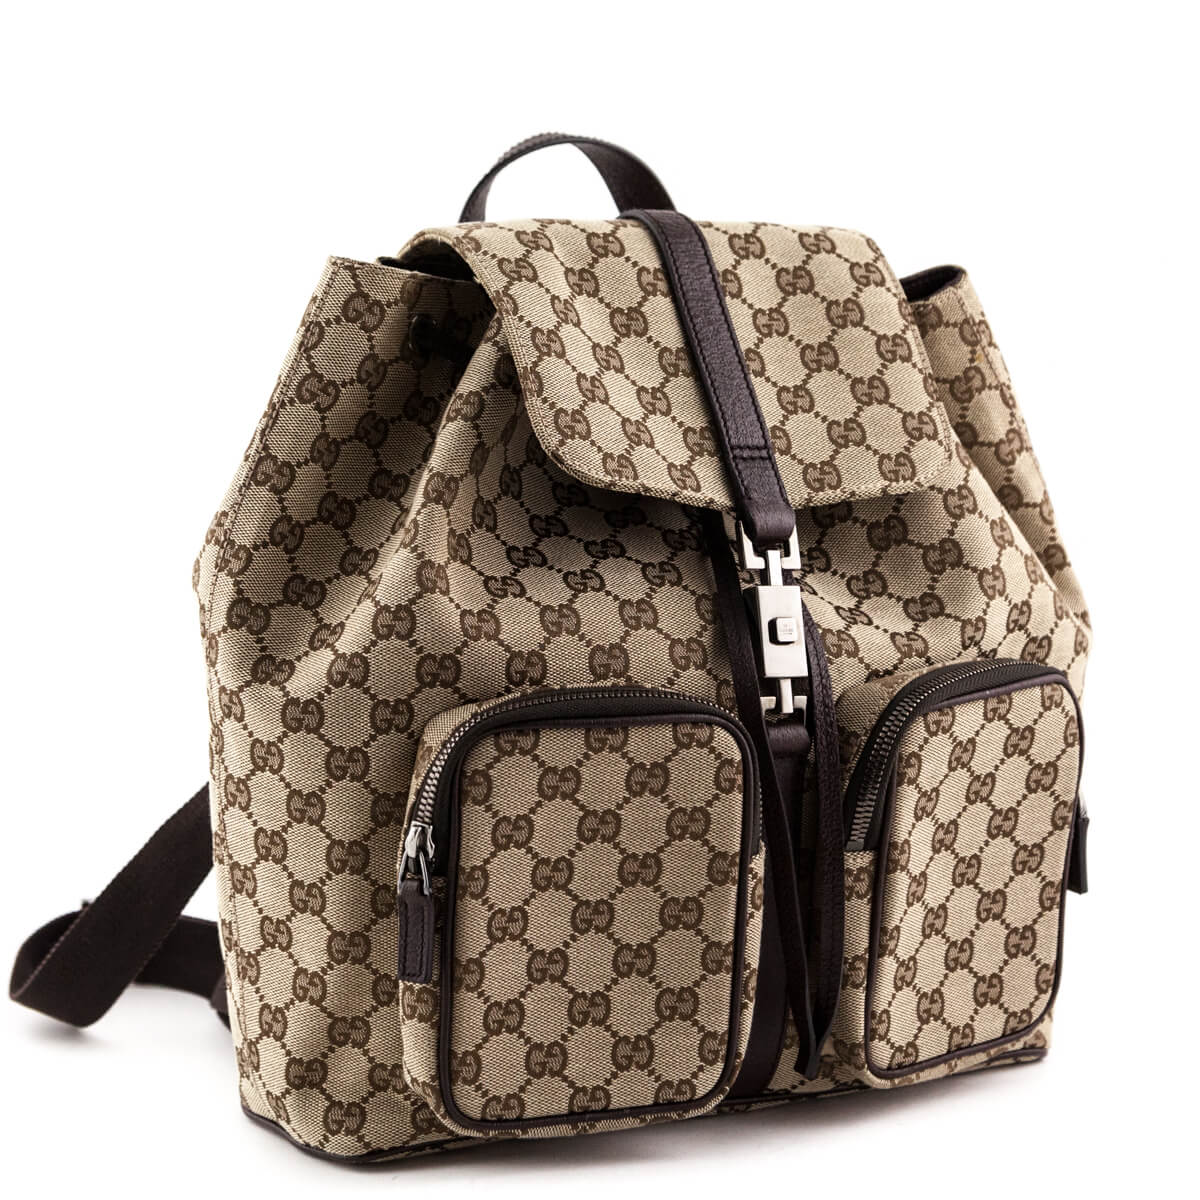 7be69bc278802a ... Gucci GG Canvas Abbey Backpack - LOVE that BAG - Preowned Authentic  Designer Handbags ...